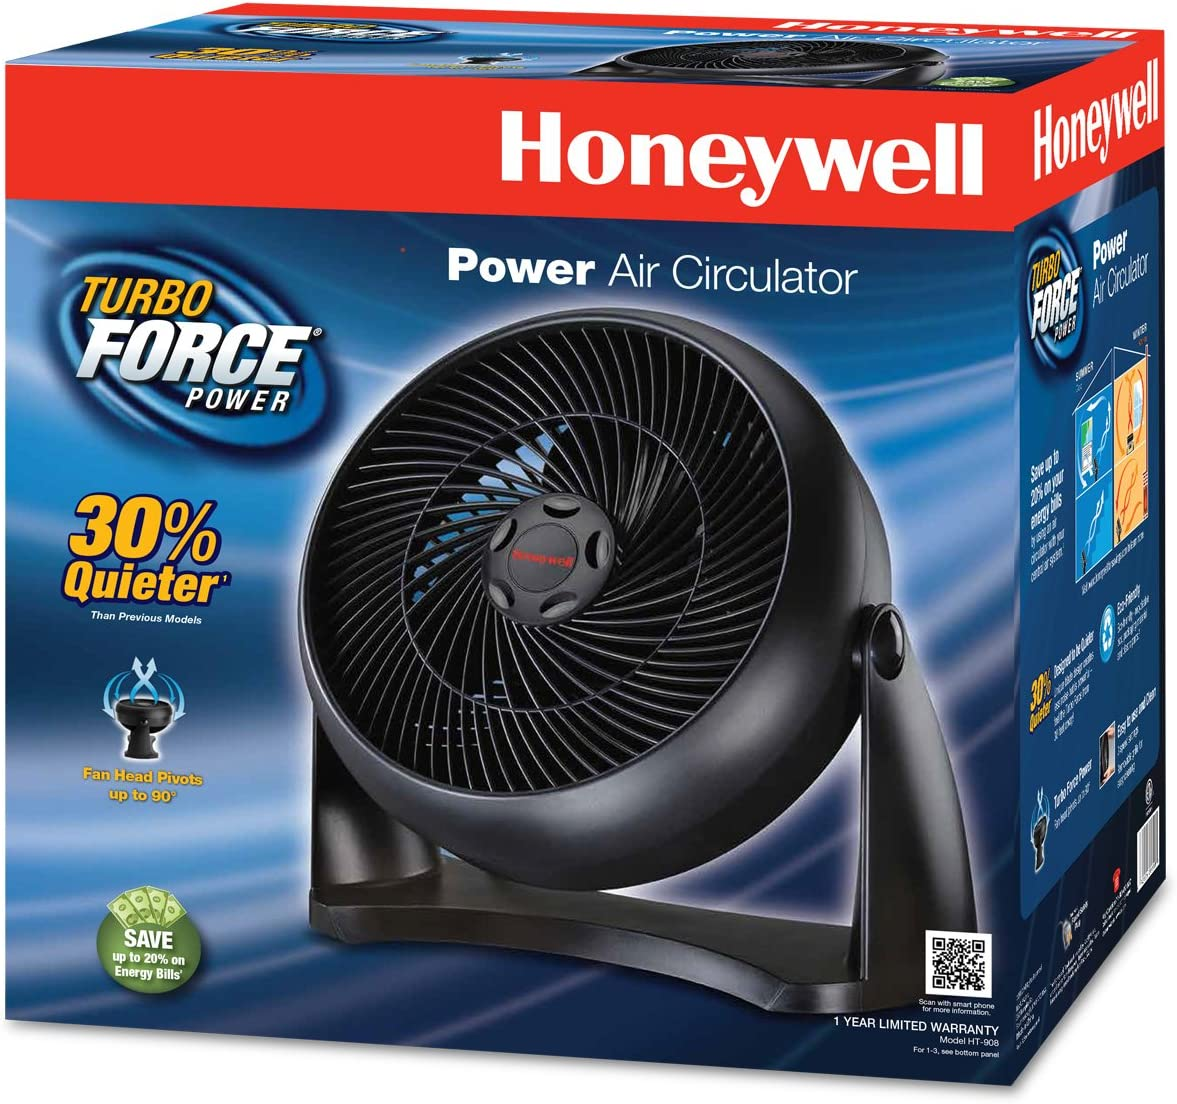 Honeywell HT-908 Turbo Force Room Air Circulator, 10 inch, Black